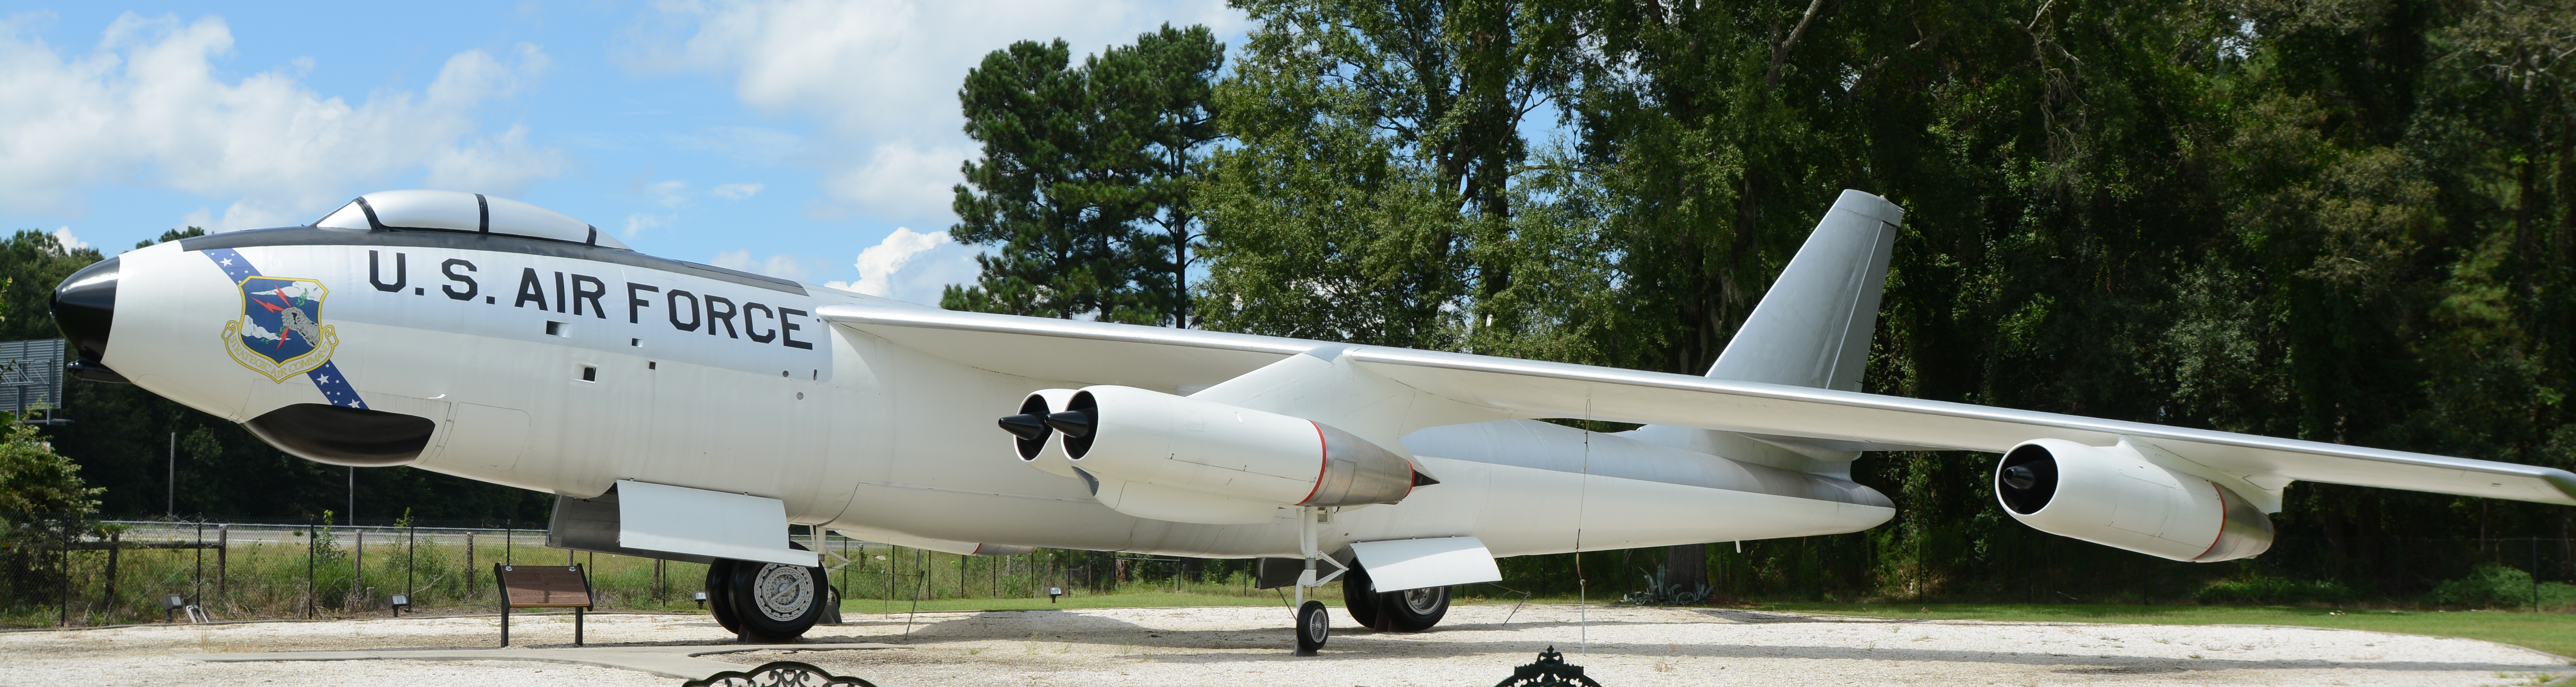 FileBoeing B At Mighty Th Air Force Museum Pooler GA US - Air force museums in us